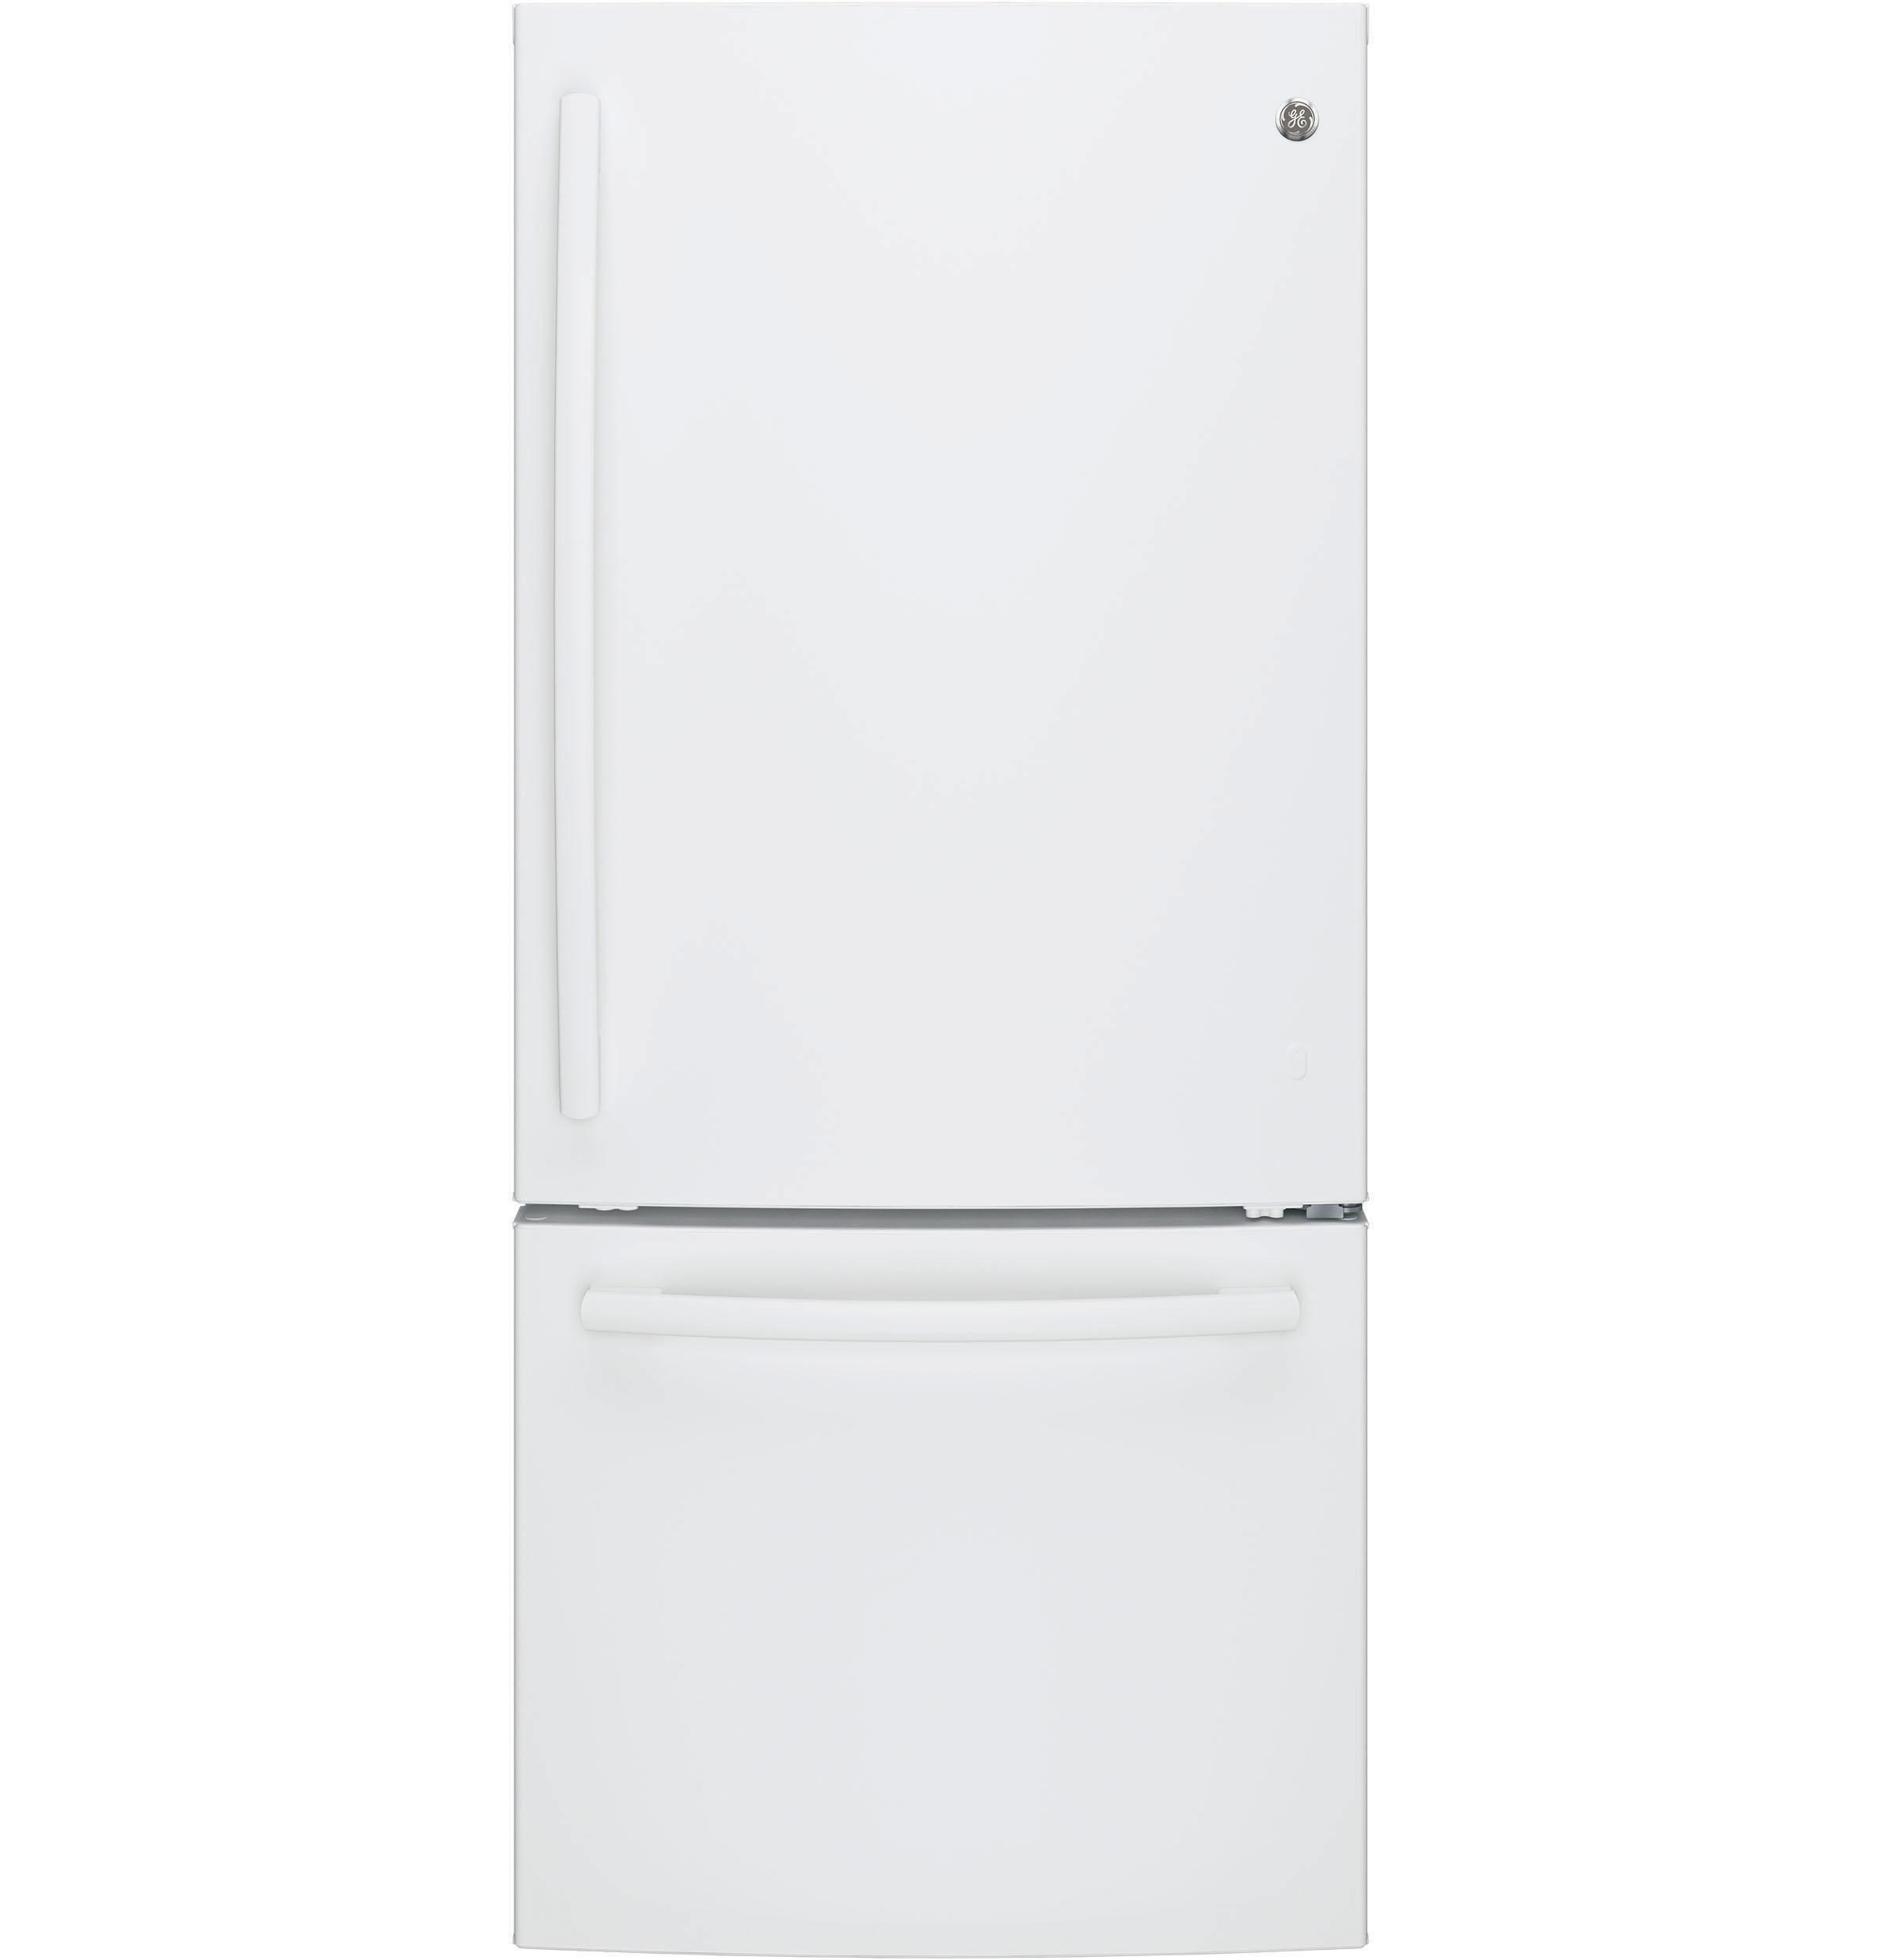 GE APPLIANCES GDE21EGKWW